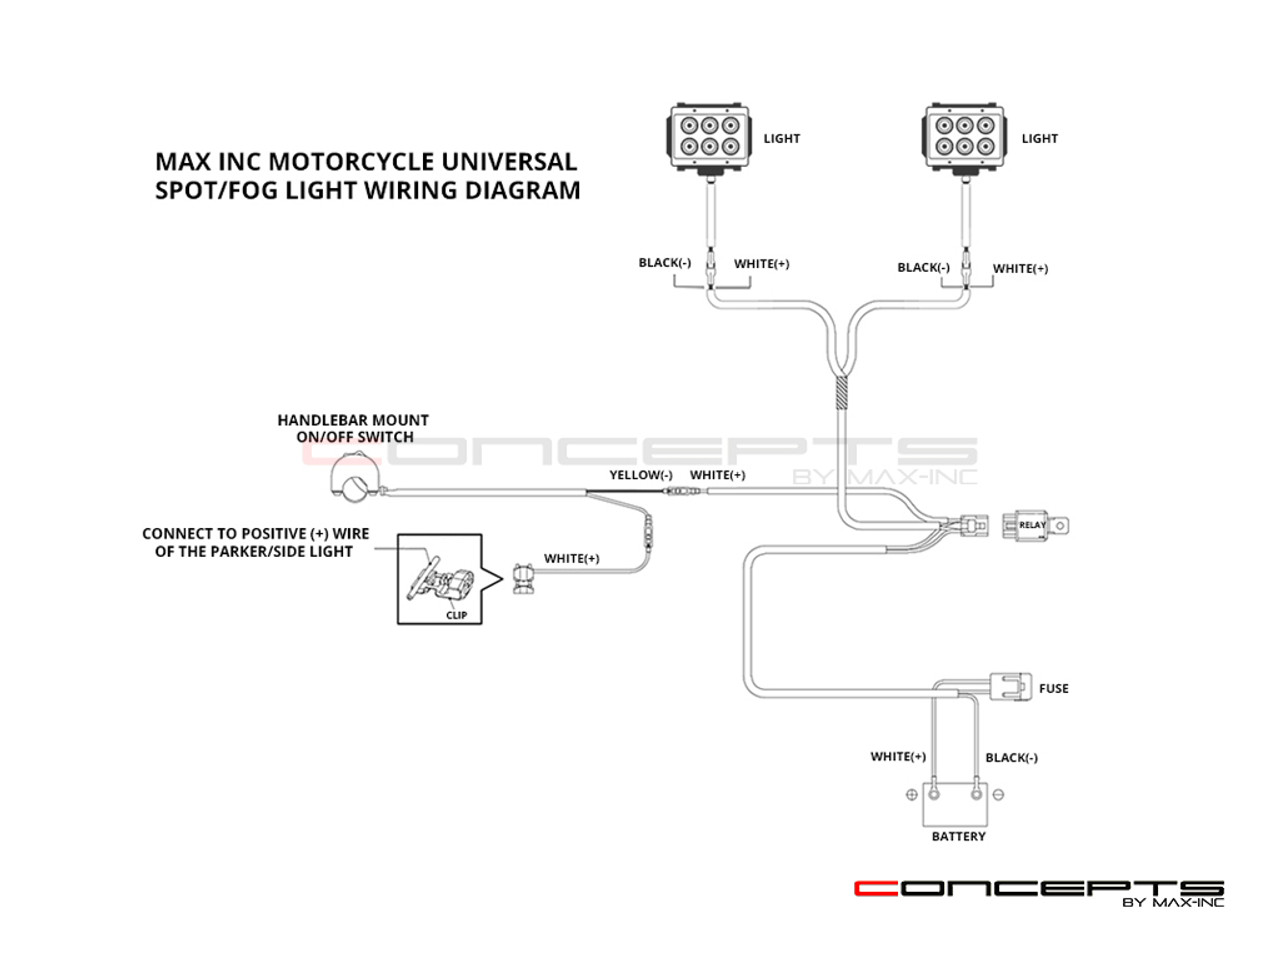 Complete DIY Universal Motorcycle Spot / Fog Light Wiring Kit - PLUG N PLAY  - www.max-inc.cnMAX-INC